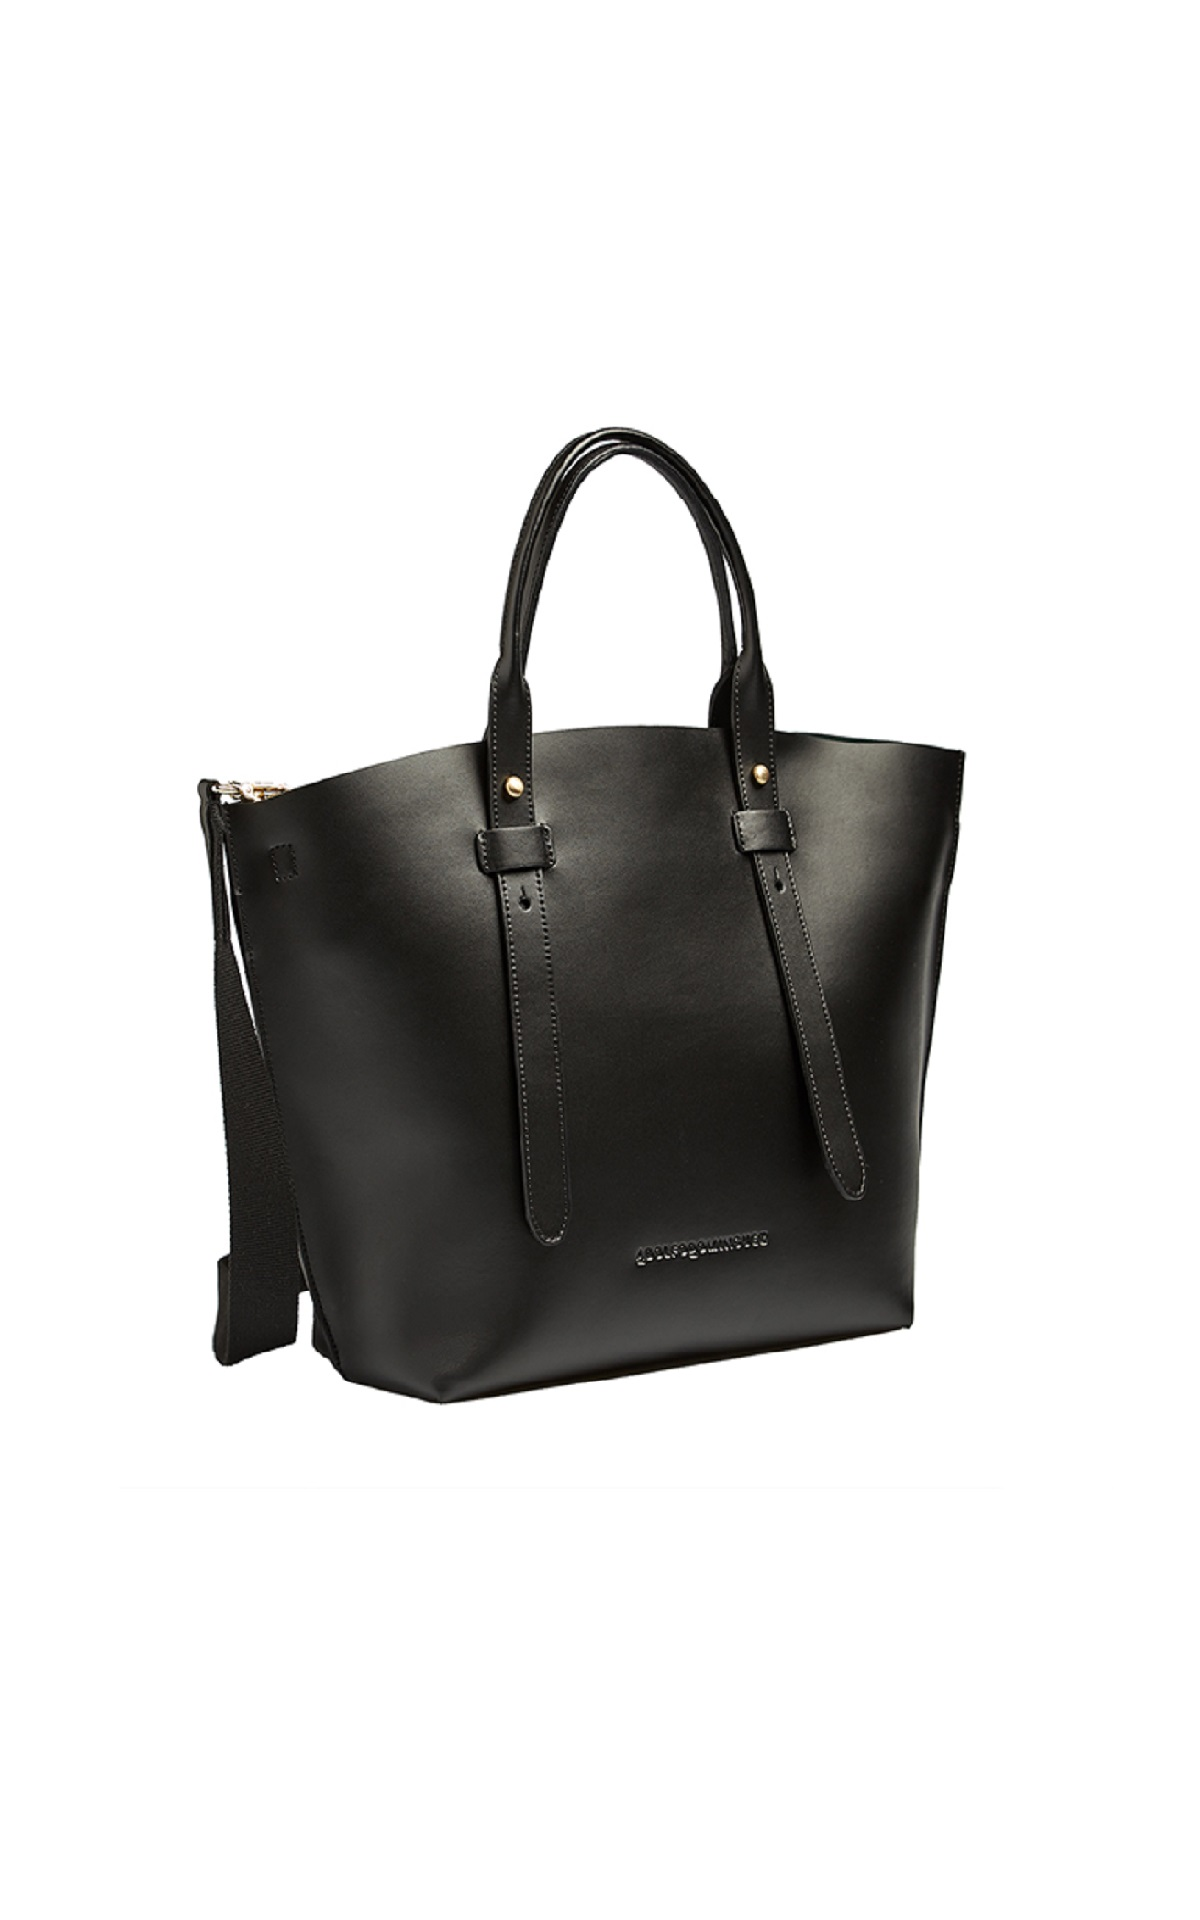 Black leather tote bag Adolfo Dominguez